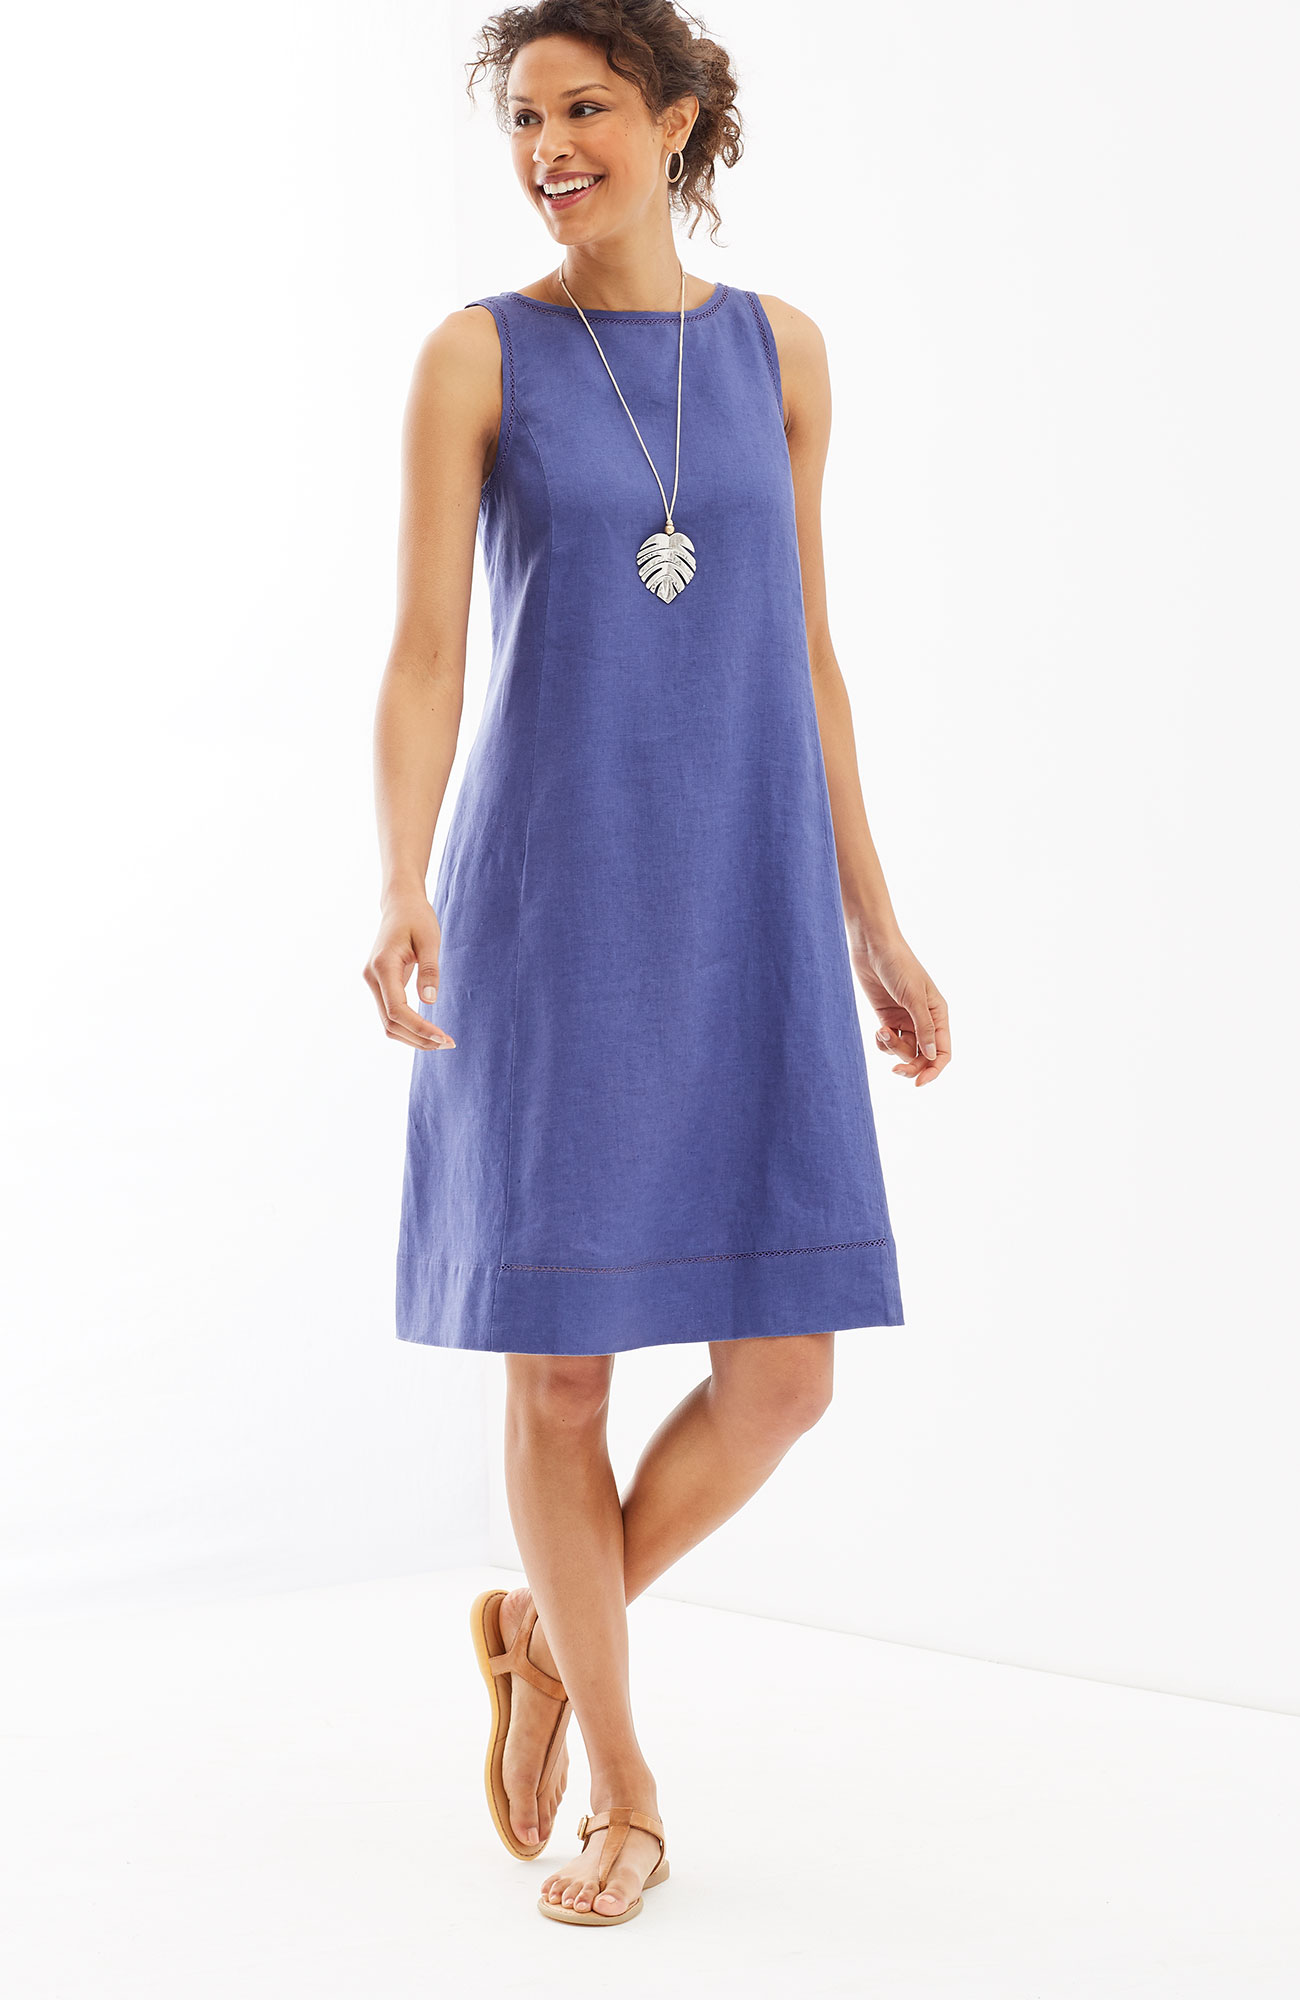 linen A-line sleeveless dress